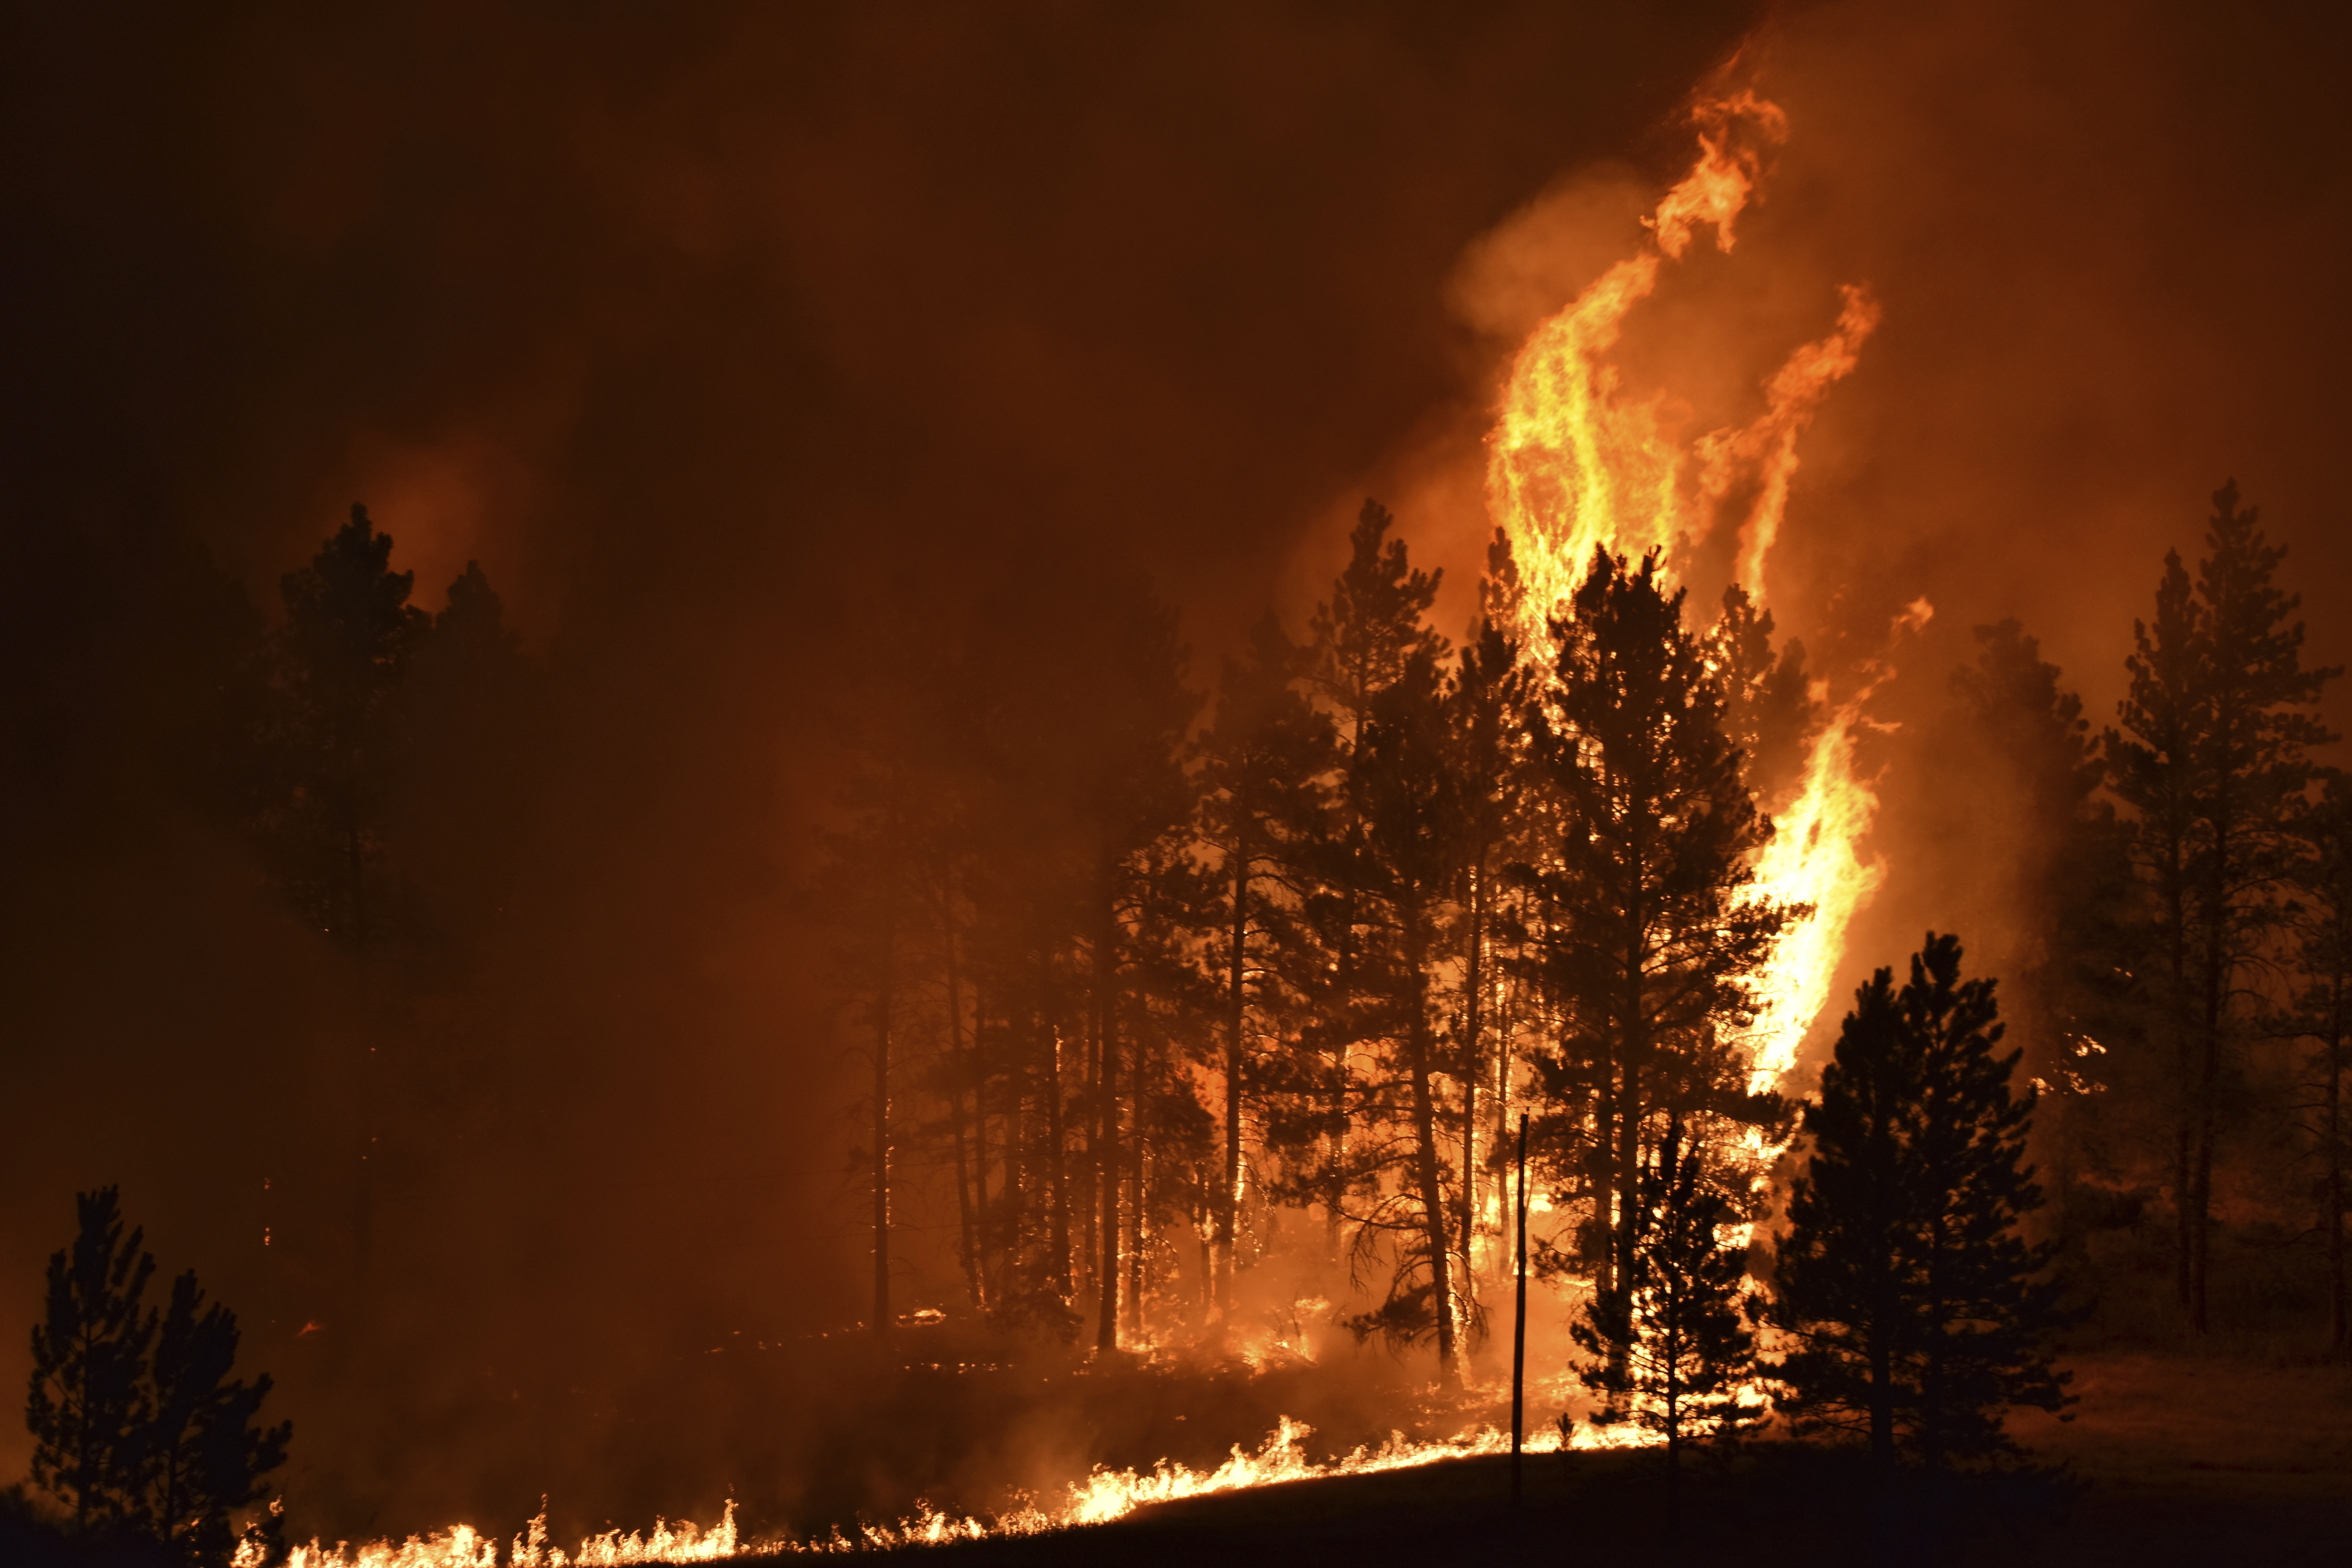 A tree goes up in flames as a wildfire burns on the Northern Cheyenne Indian Reservation near Lame Deer, Mont.